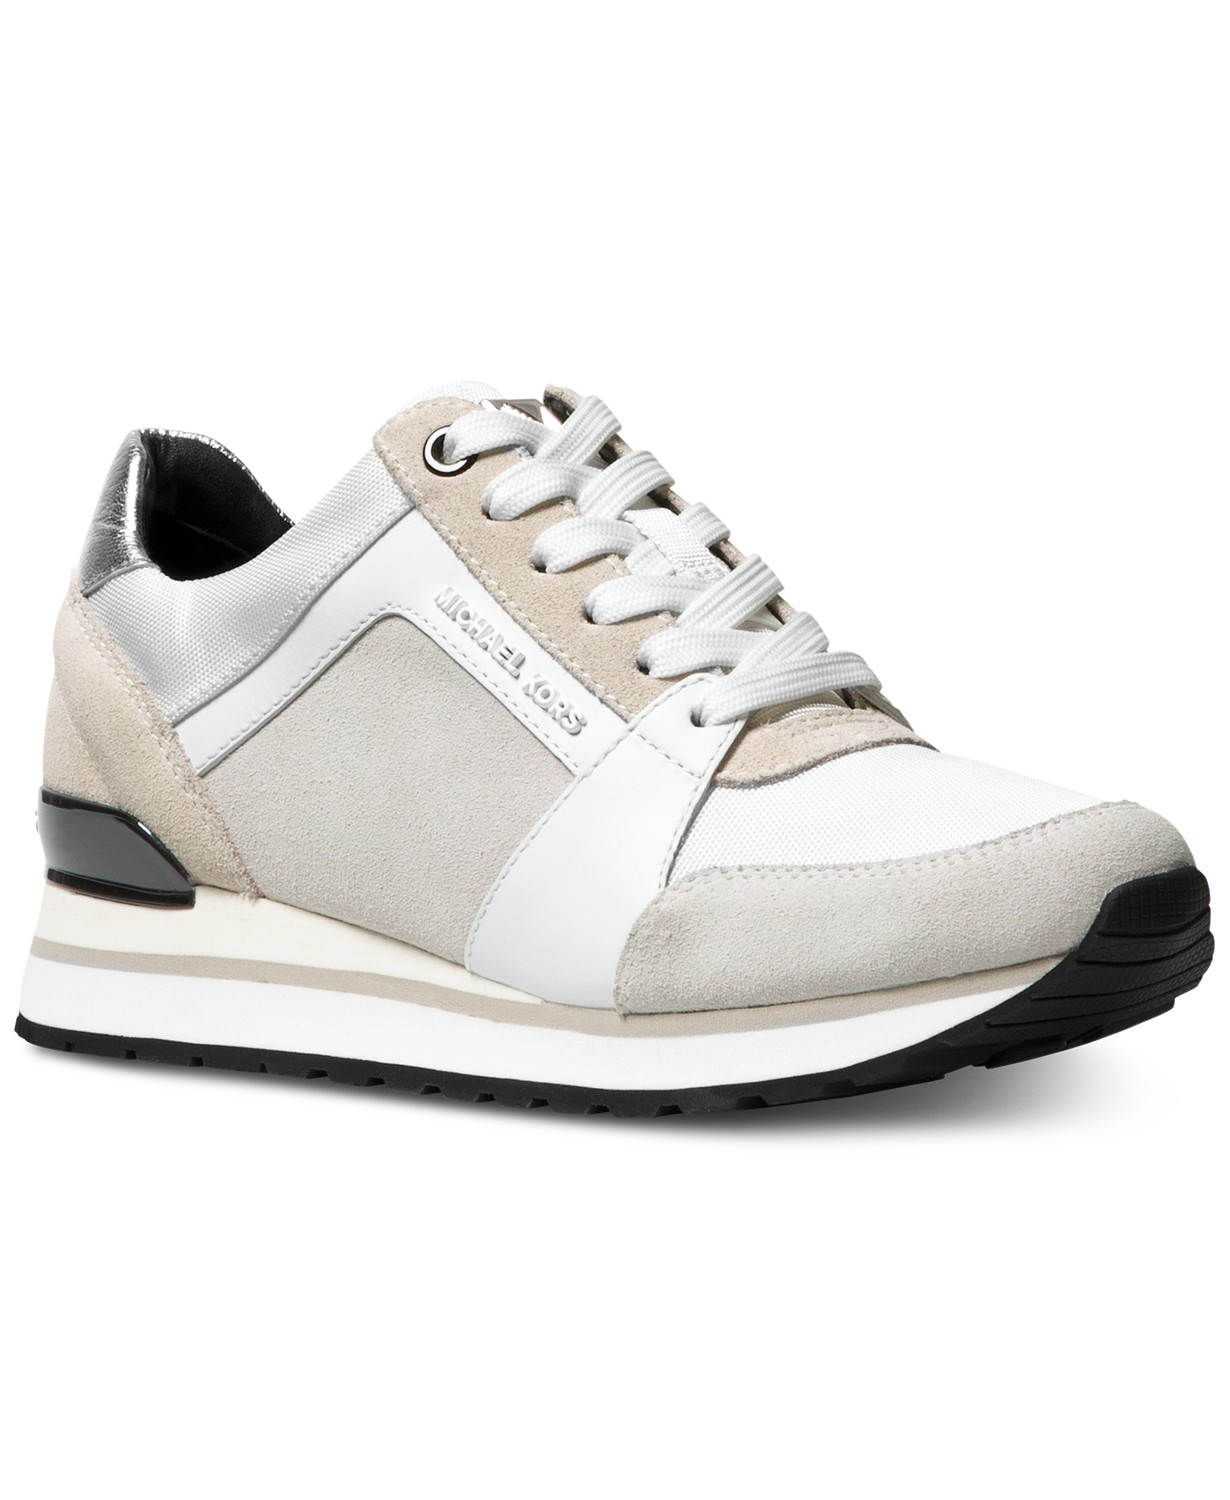 Michael Kors Michael Kors Shoes Leather Trainers Sneakers